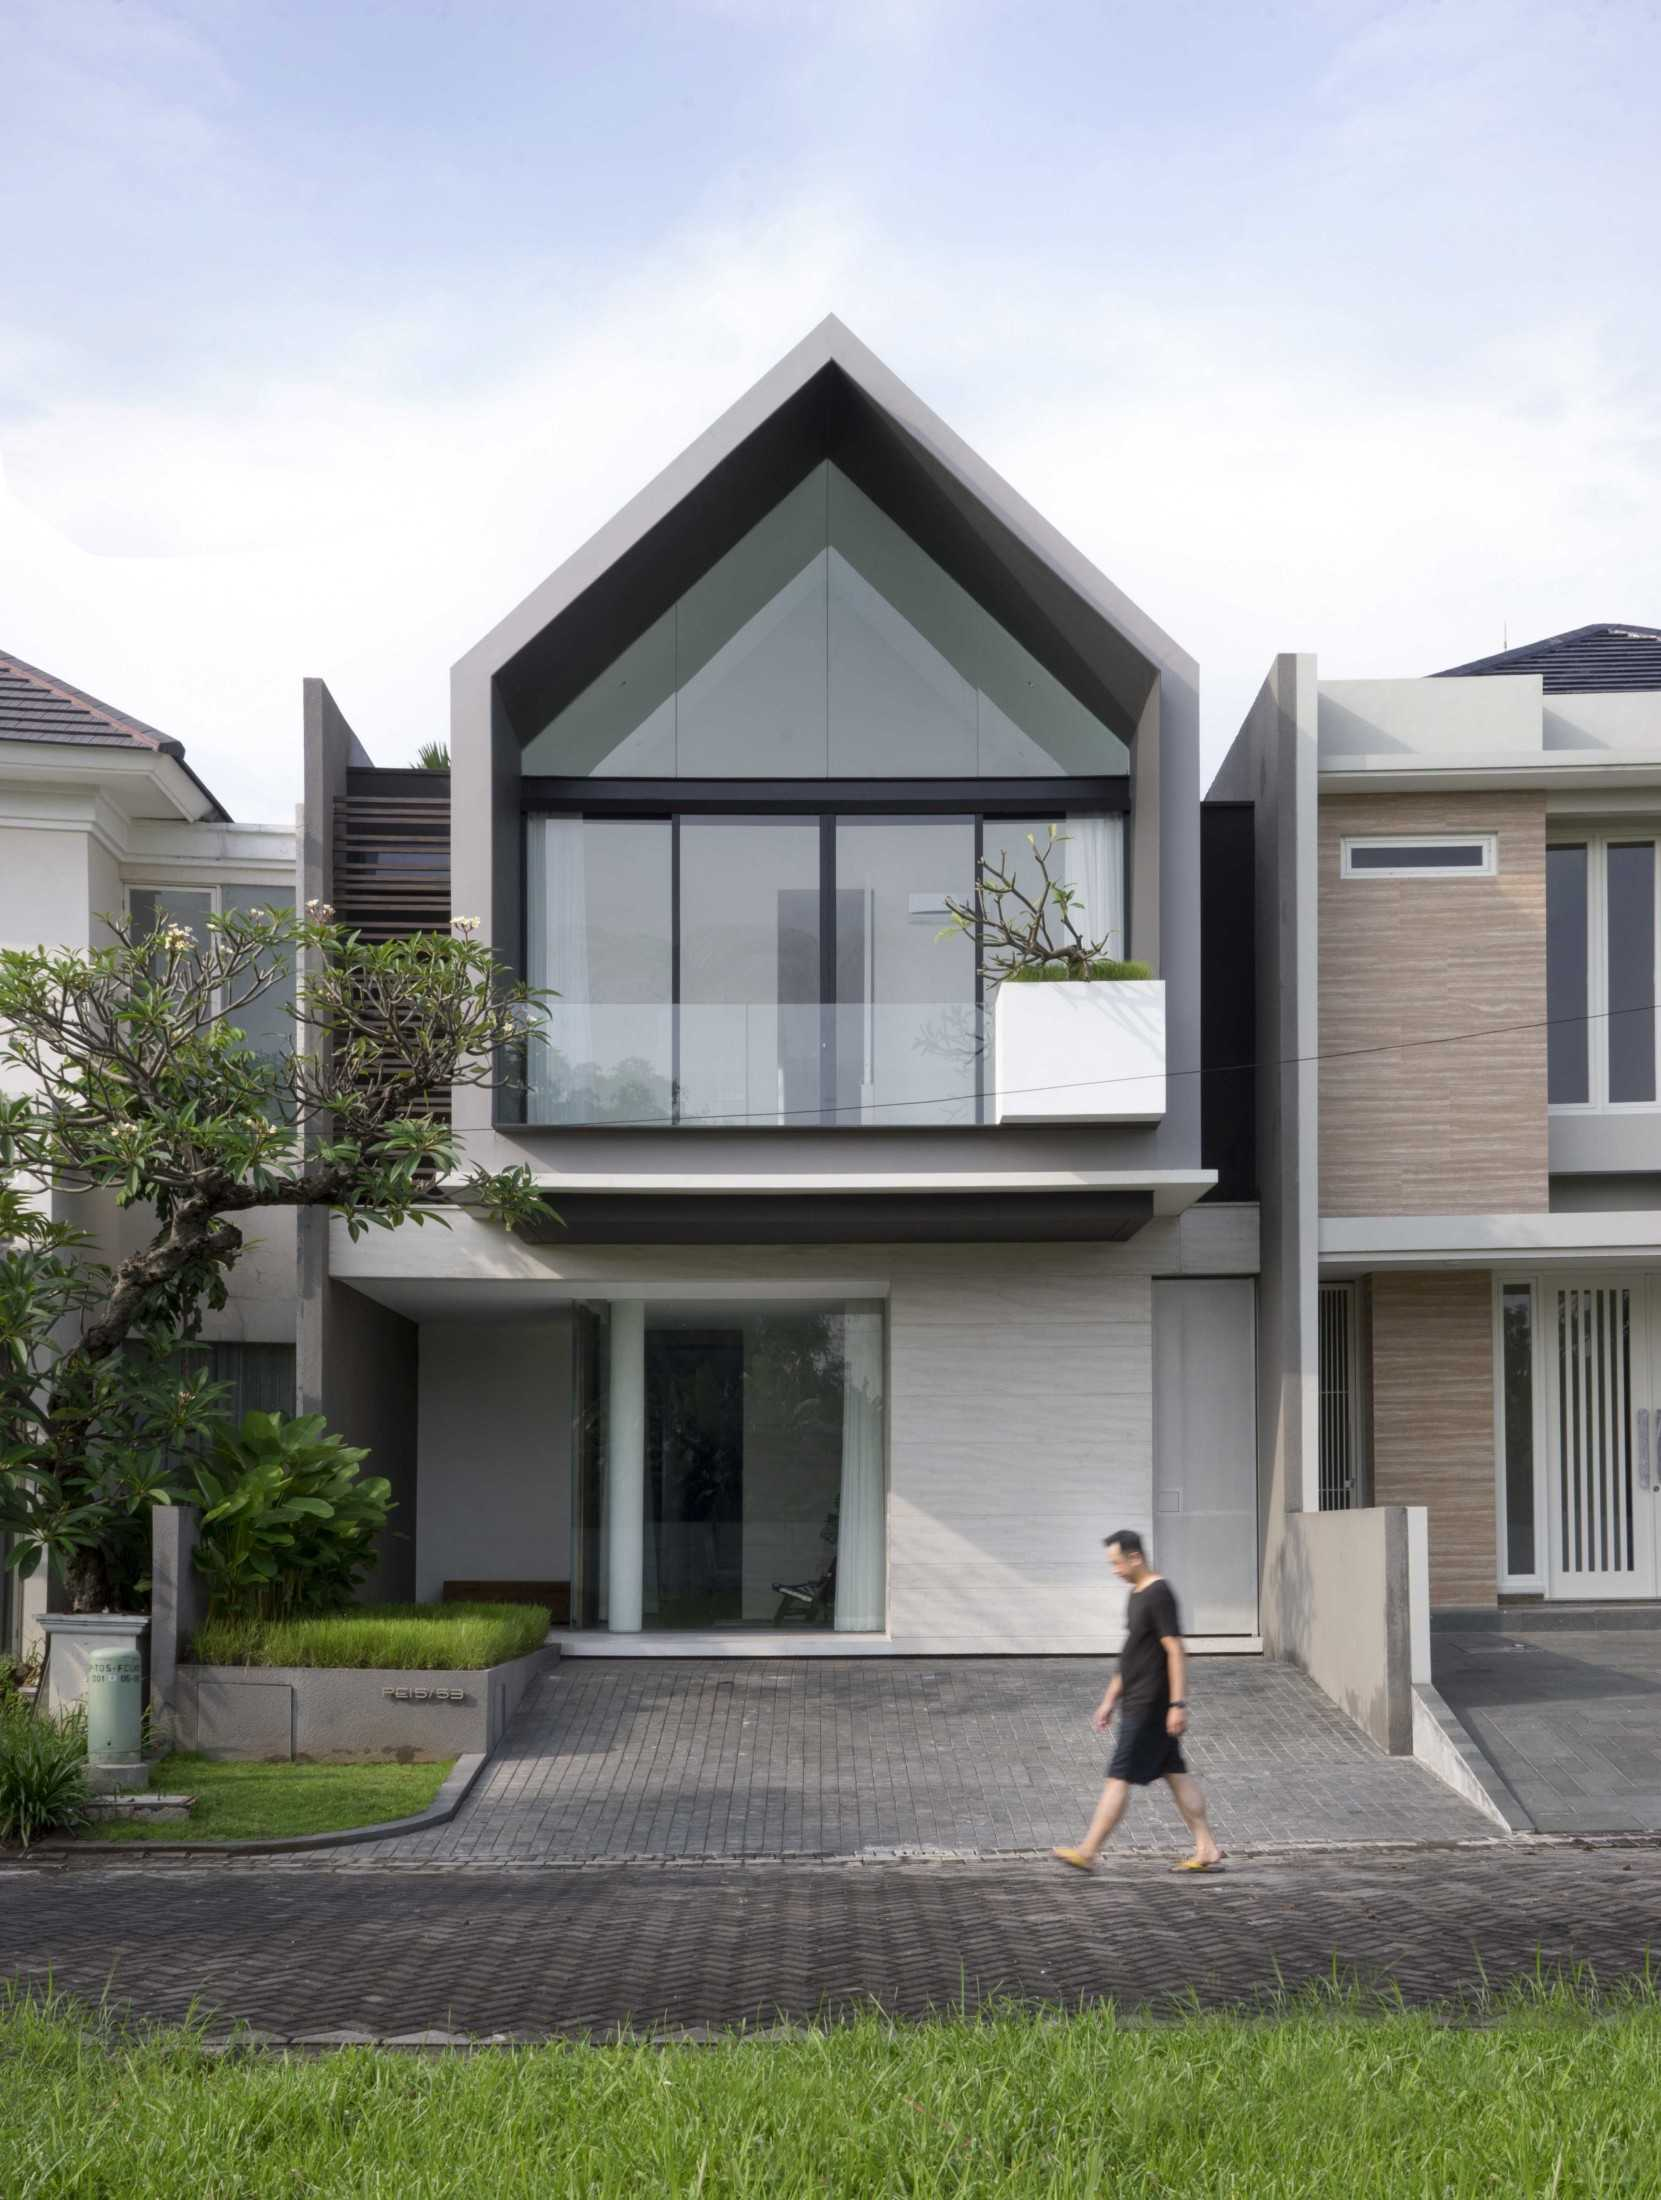 Simple Projects Architecture 'hhh' House Surabaya, Kota Sby, Jawa Timur, Indonesia  Simple-Projects-Architecture-Hhh-House  75050